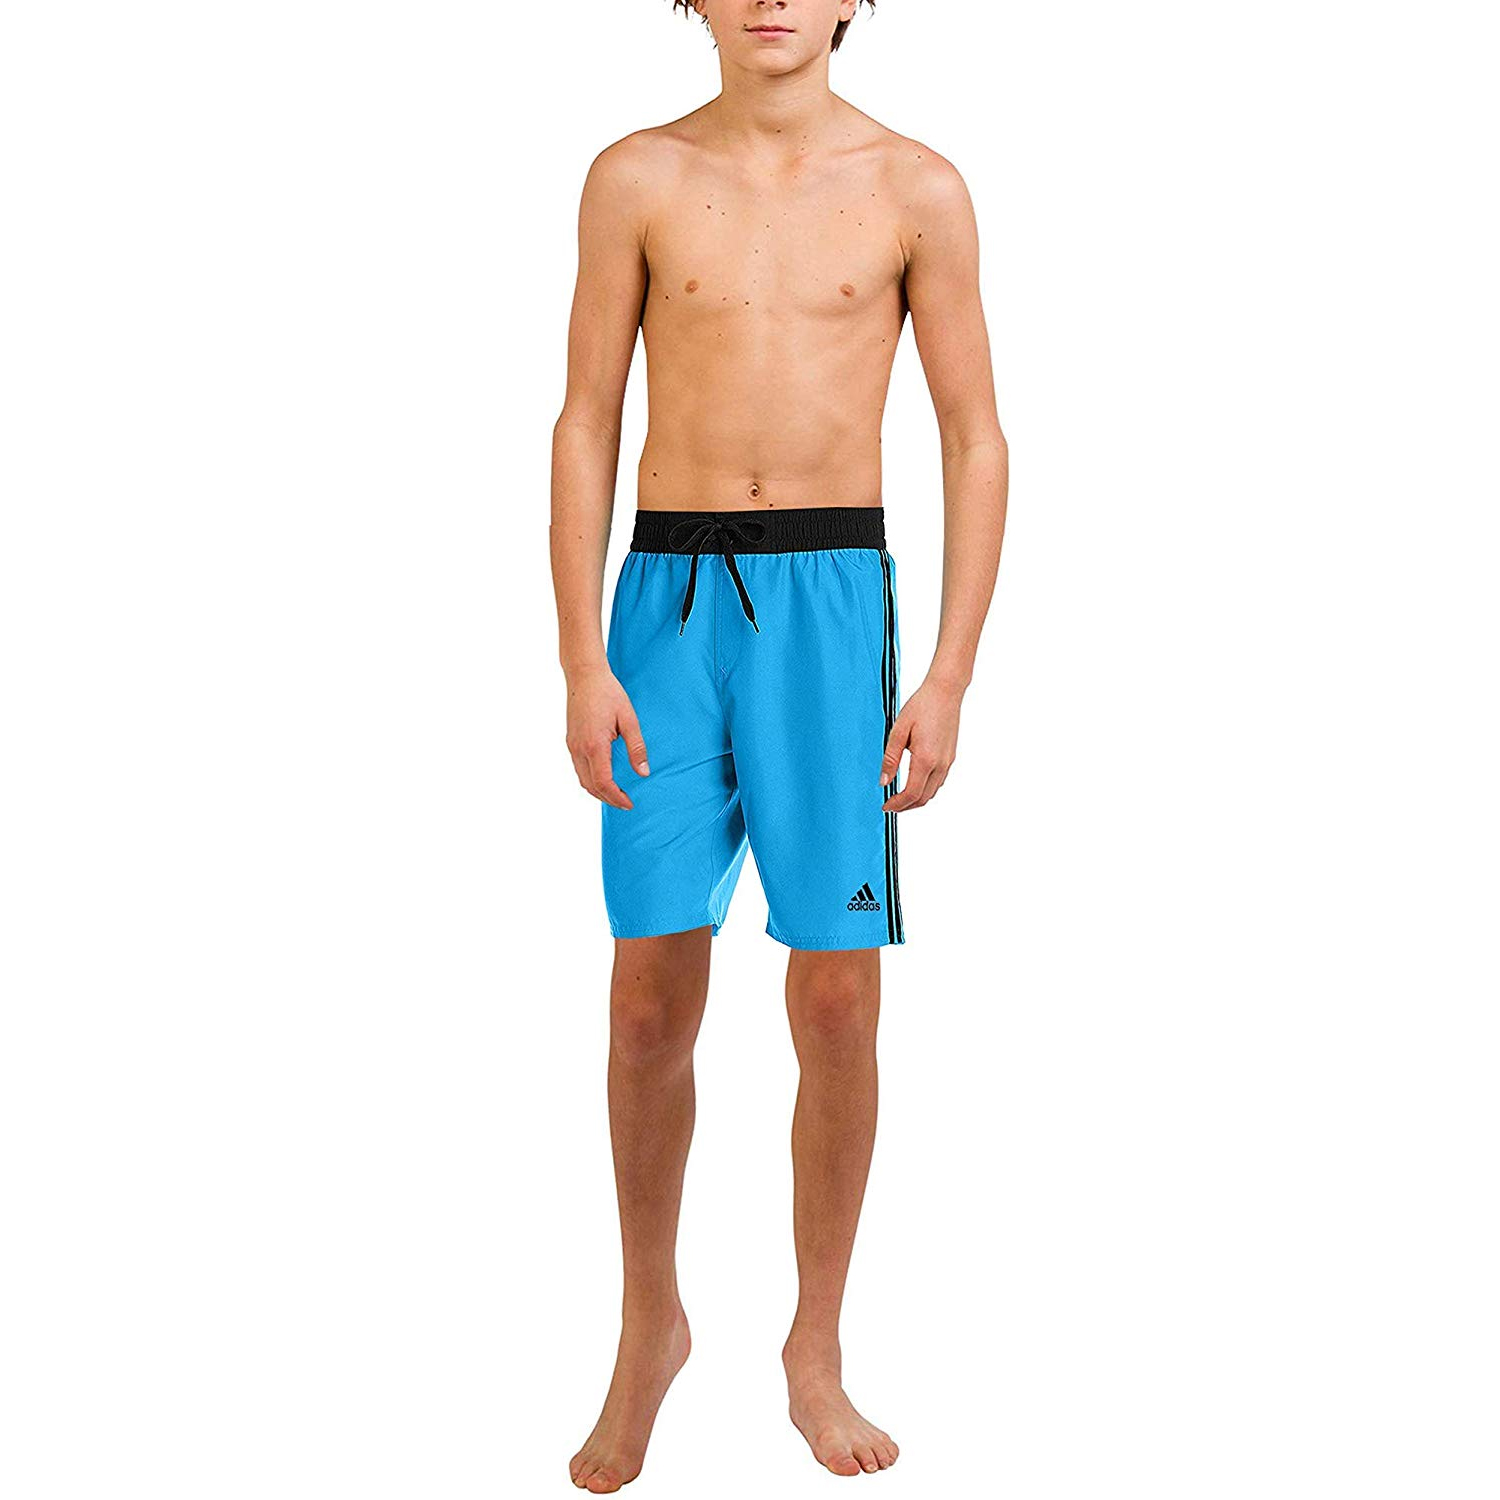 a8c5e26a792 Adidas-Boys-Swim-Trunks-Boardshorts thumbnail 8